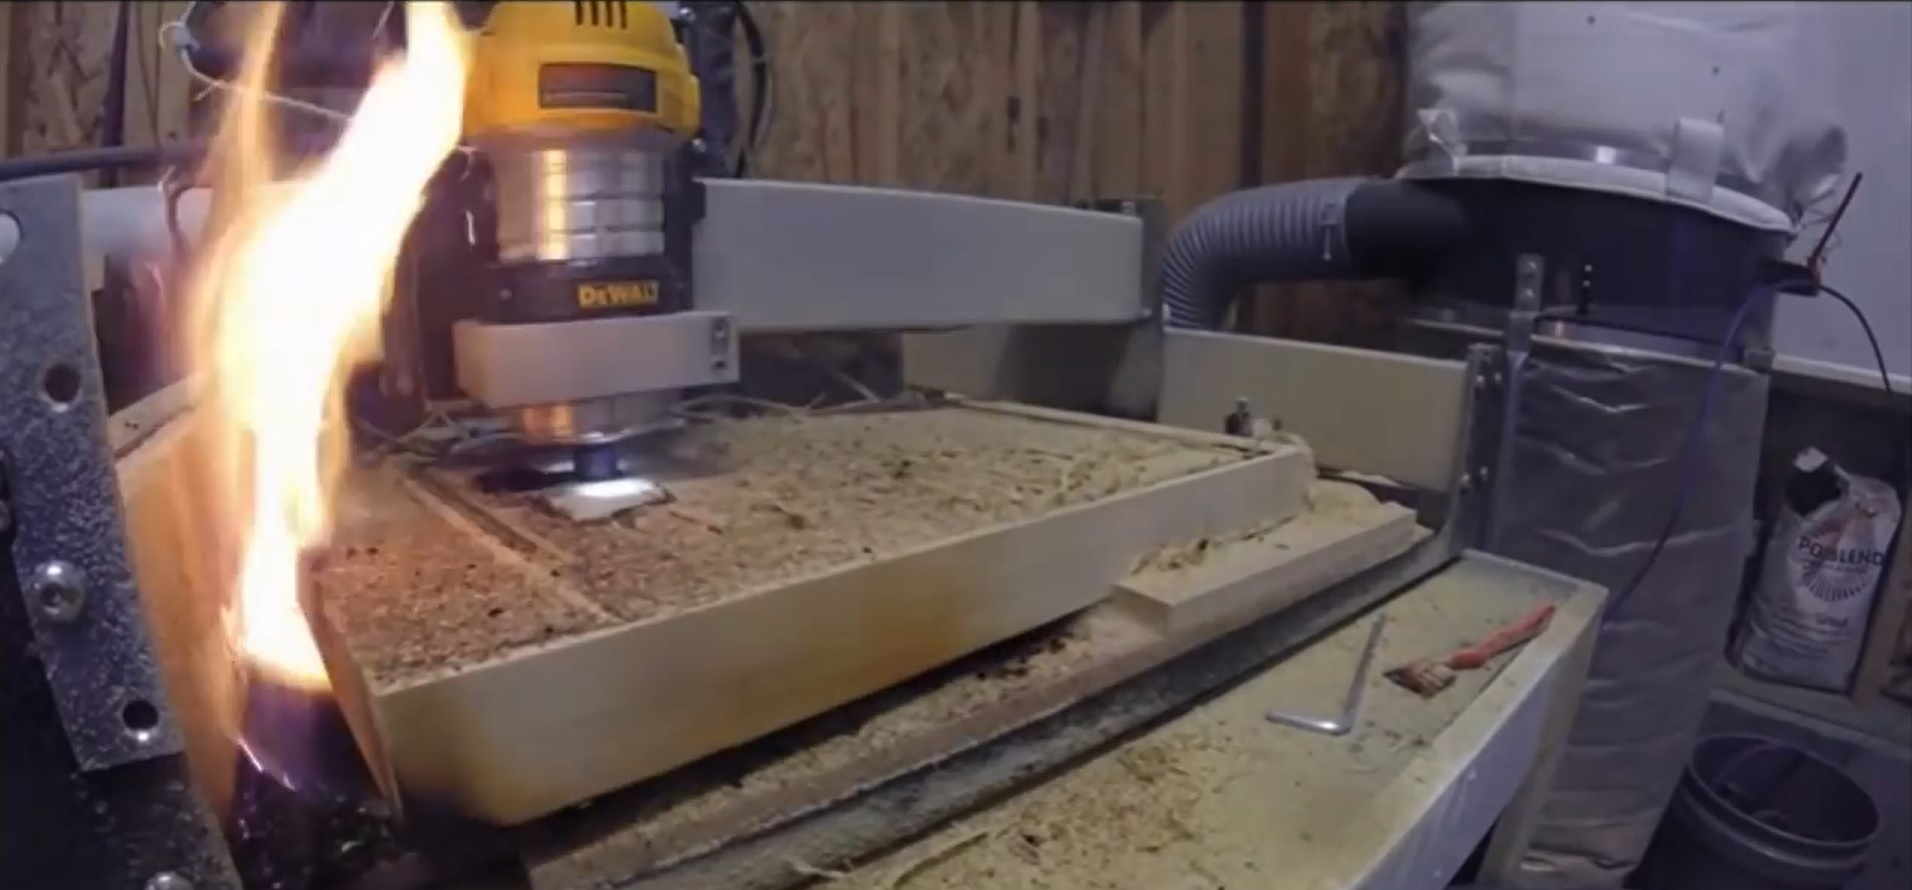 router cnc on fire